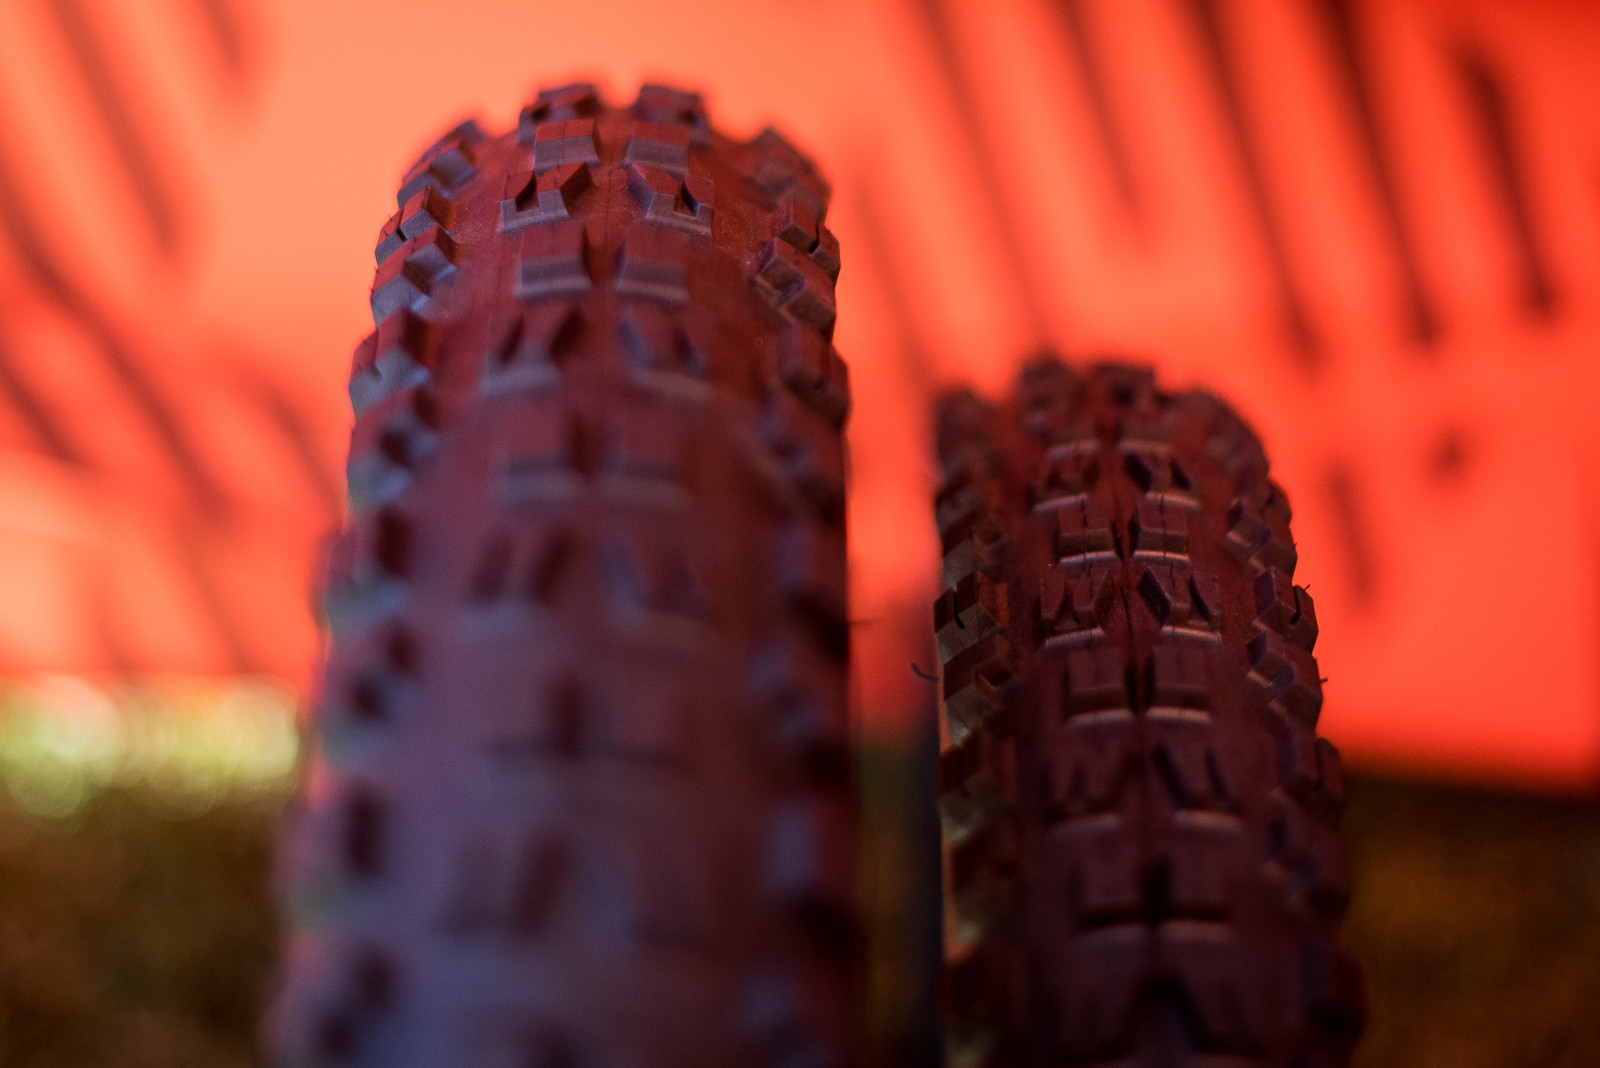 Standard 27.5x2.4 Minion DHF vs. 29x3.0 Minion DHF. Notice the offset side-knobs.